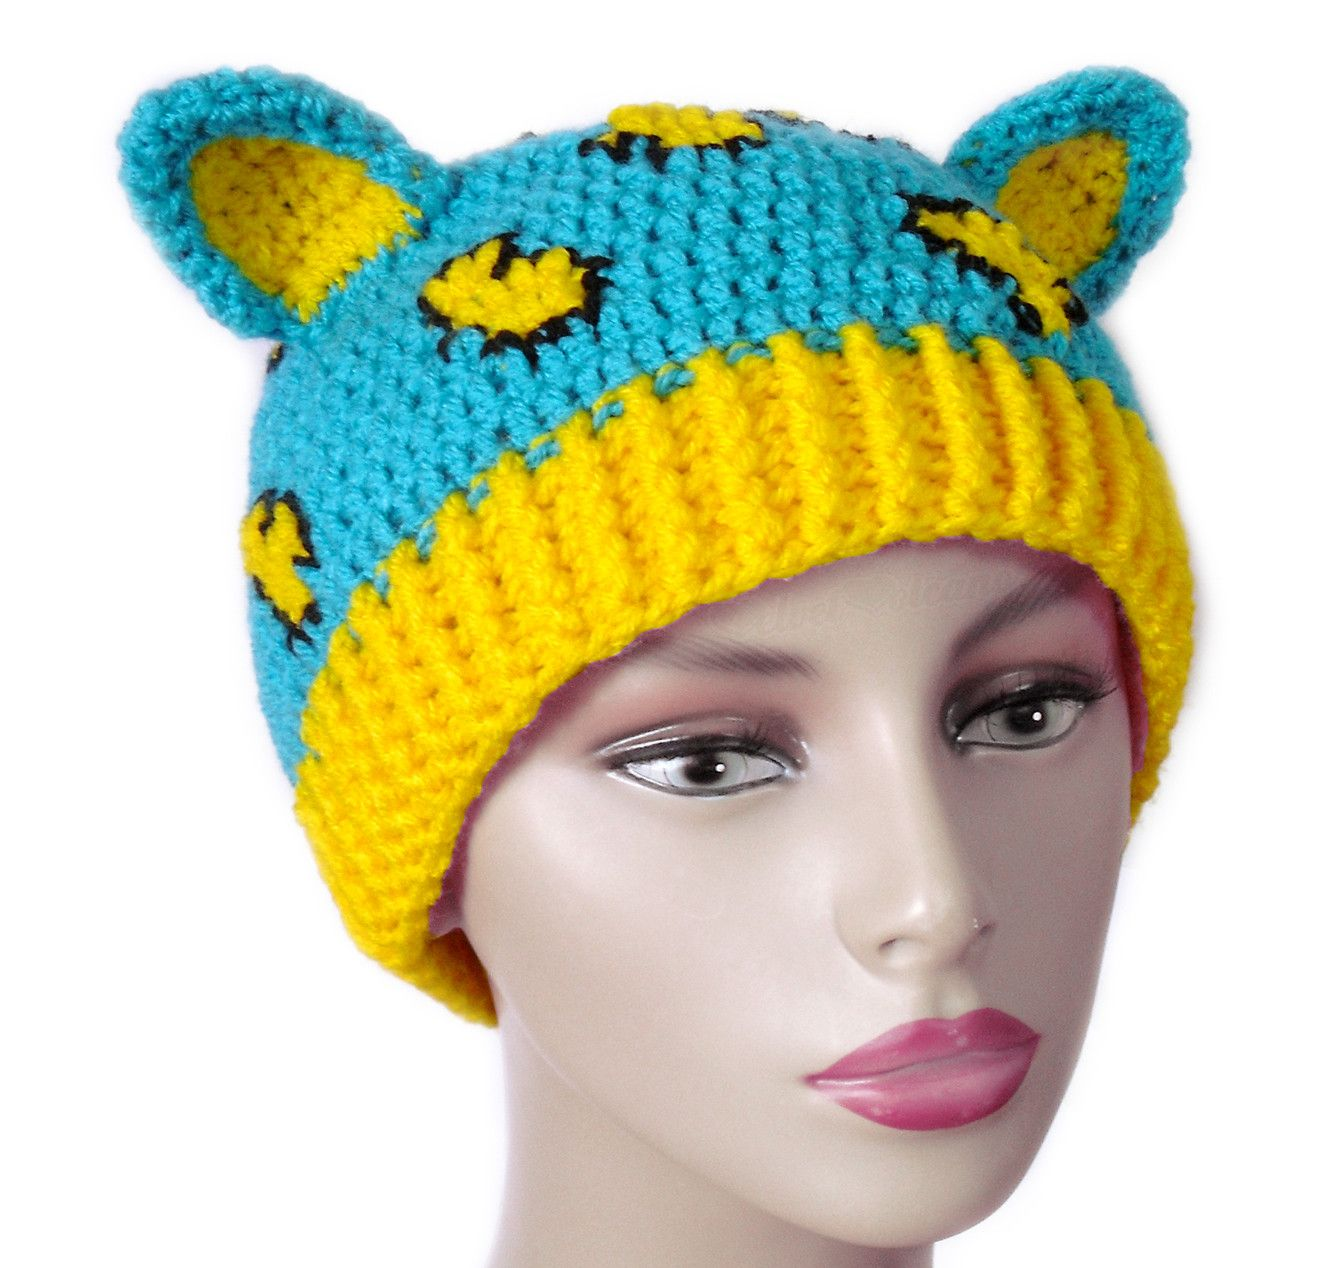 8950ff05a64 Custom Colour Leopard Beanie. Brightly Coloured Animal Print Cat Hat. Crochet  Kitty Ears Beanie. Kawaii Turquoise Yellow Leopard Print Hat with Cat Ears.